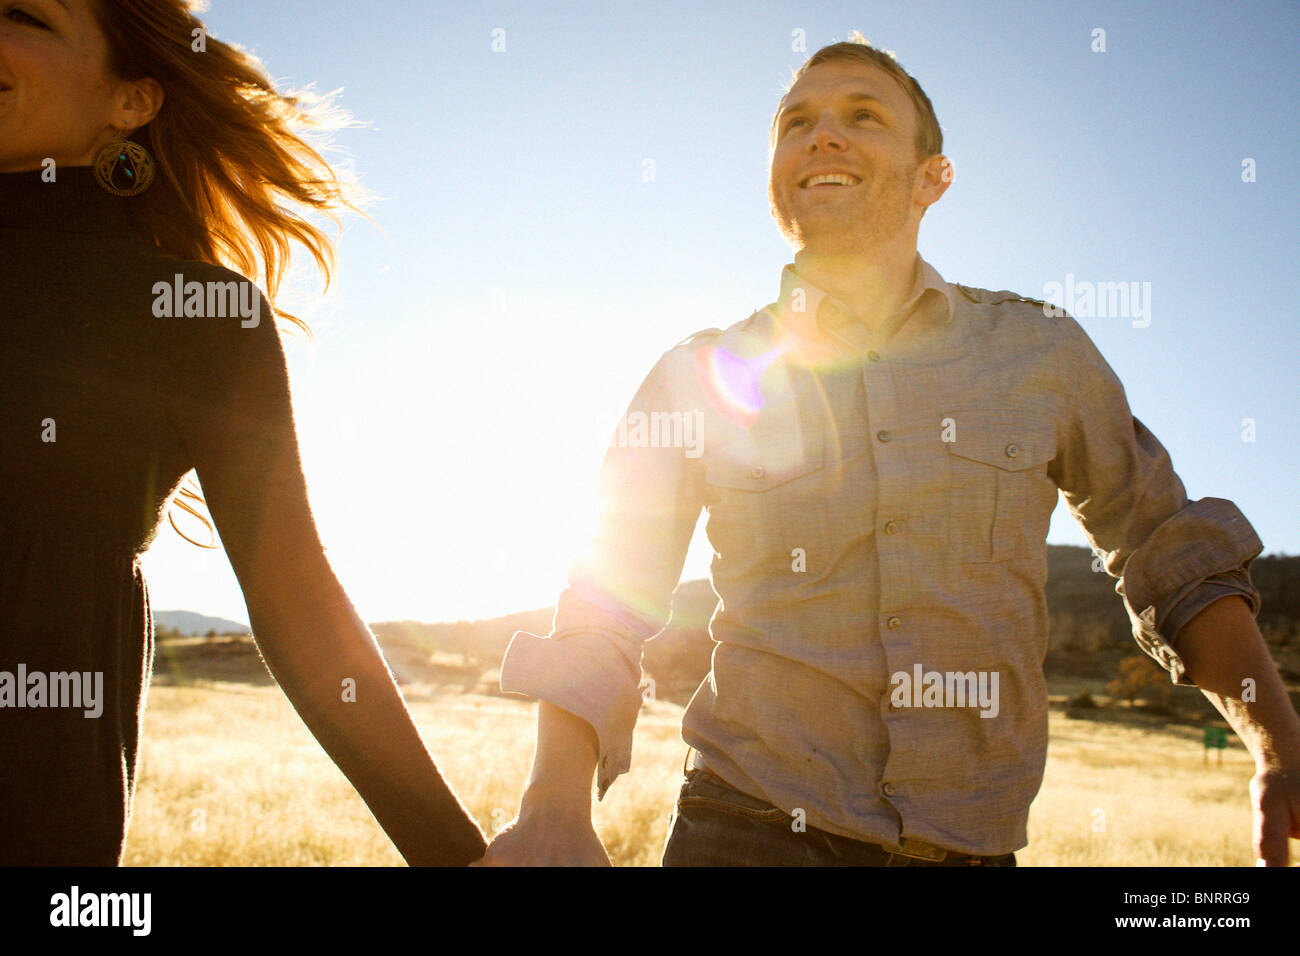 Couple run while holding hands and smiling in an open field. Stock Photo